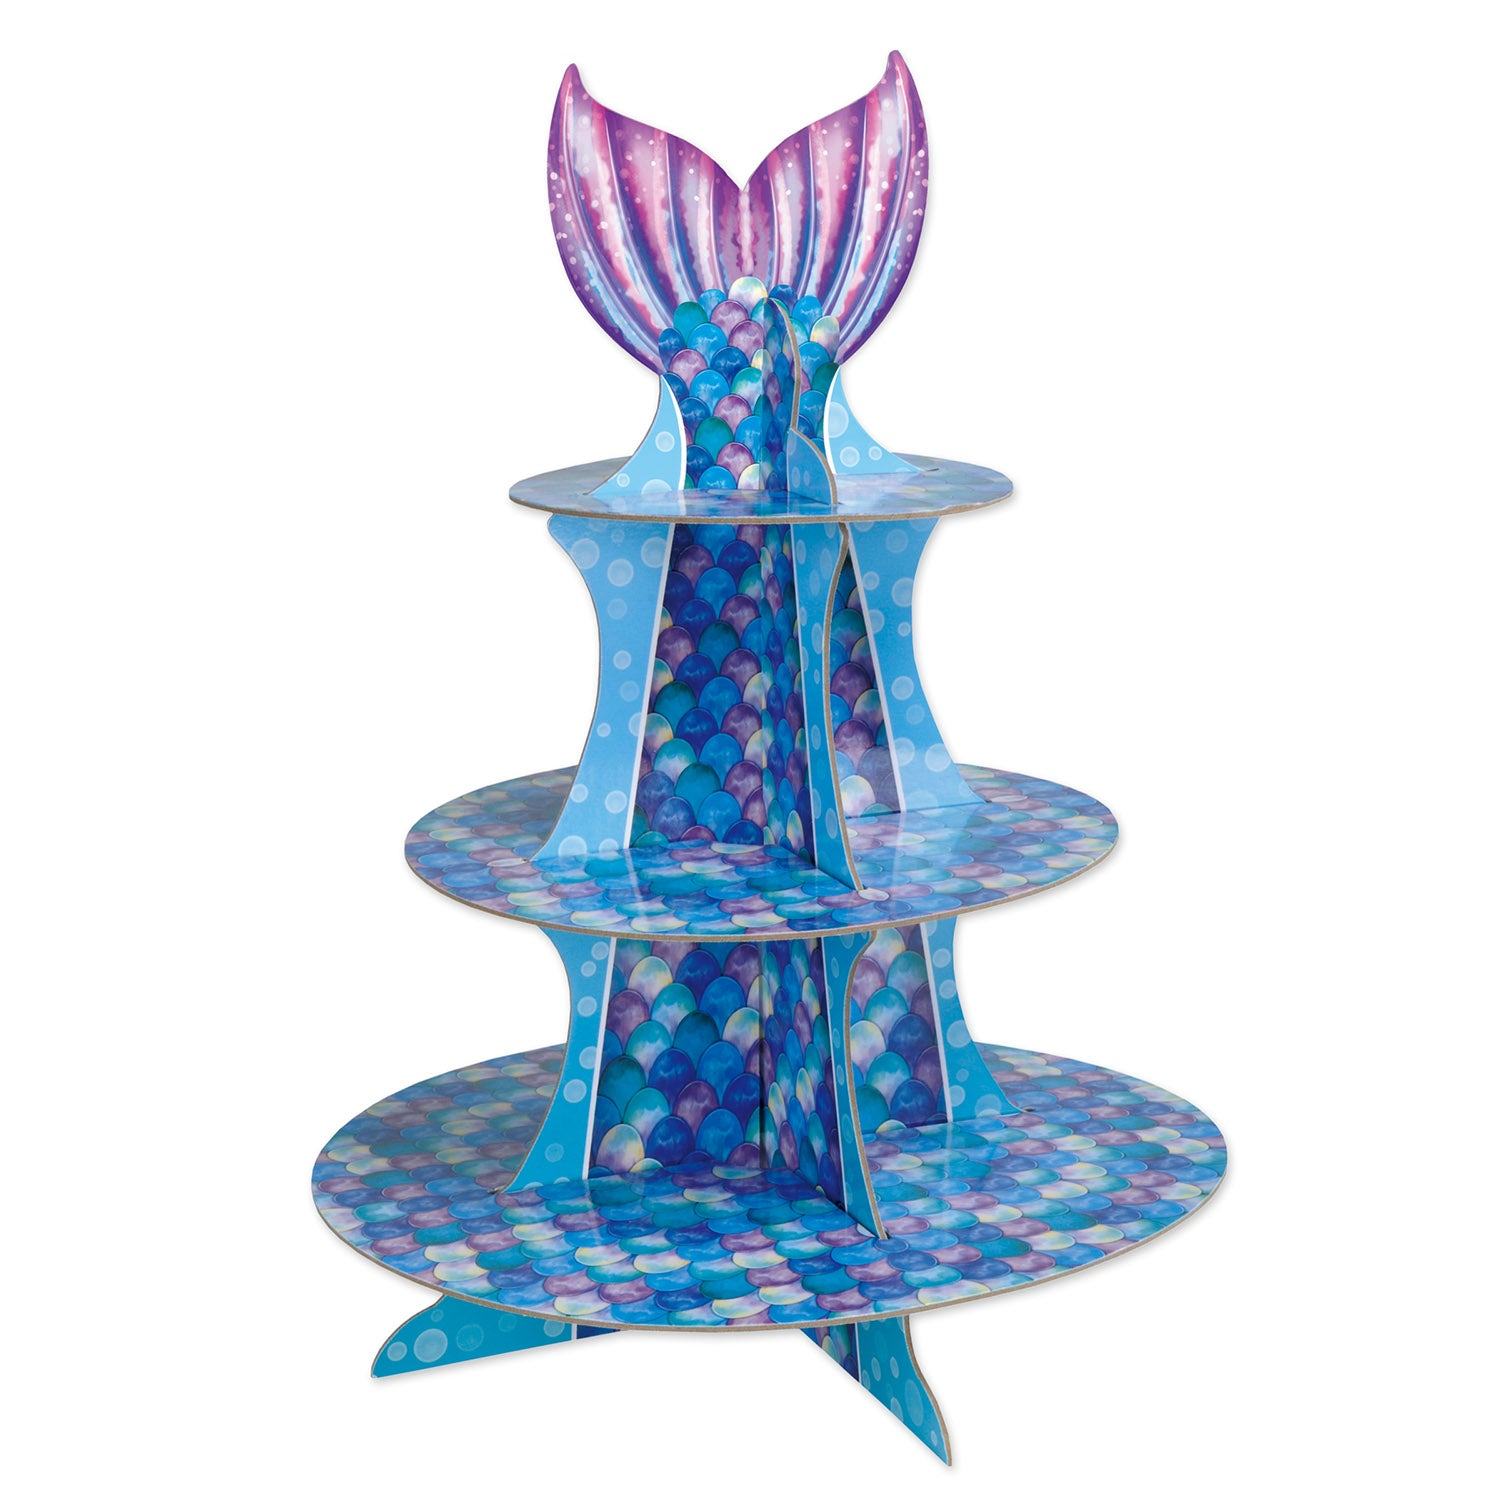 Mermaid Cupcake Stand by Beistle - Mermaid Theme Decorations